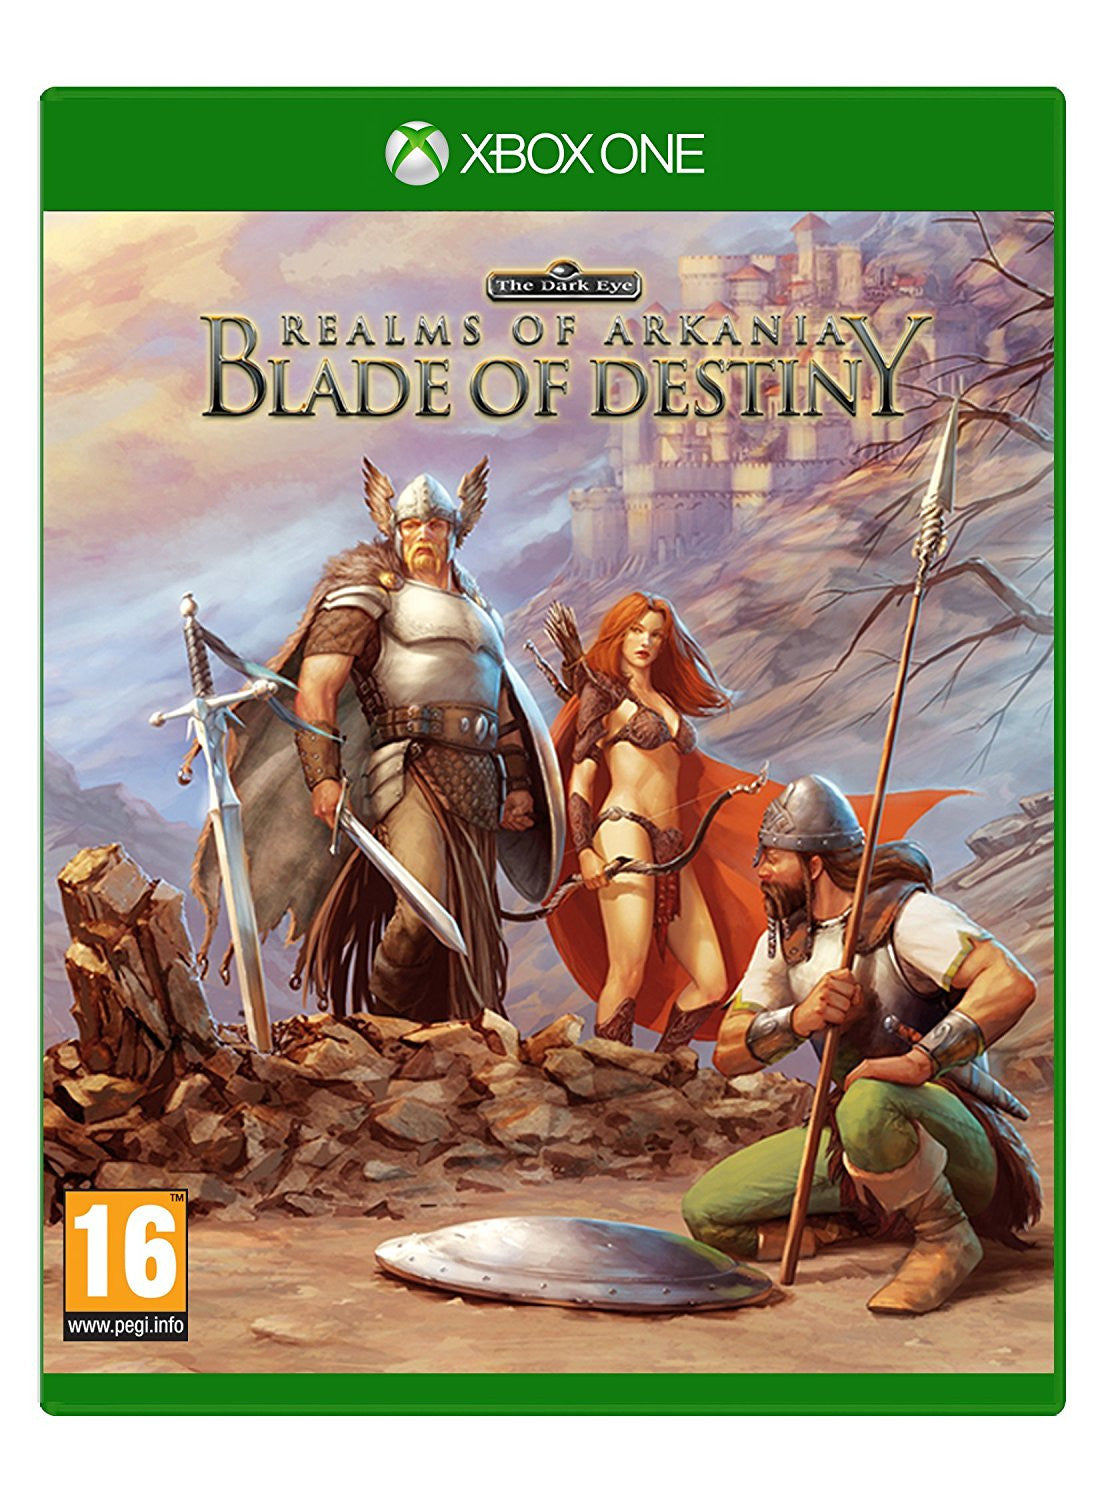 REALMS OF ARKANIA- BLADE OF DESTINY - Xbox One - Video Games by UIG Entertainment The Chelsea Gamer